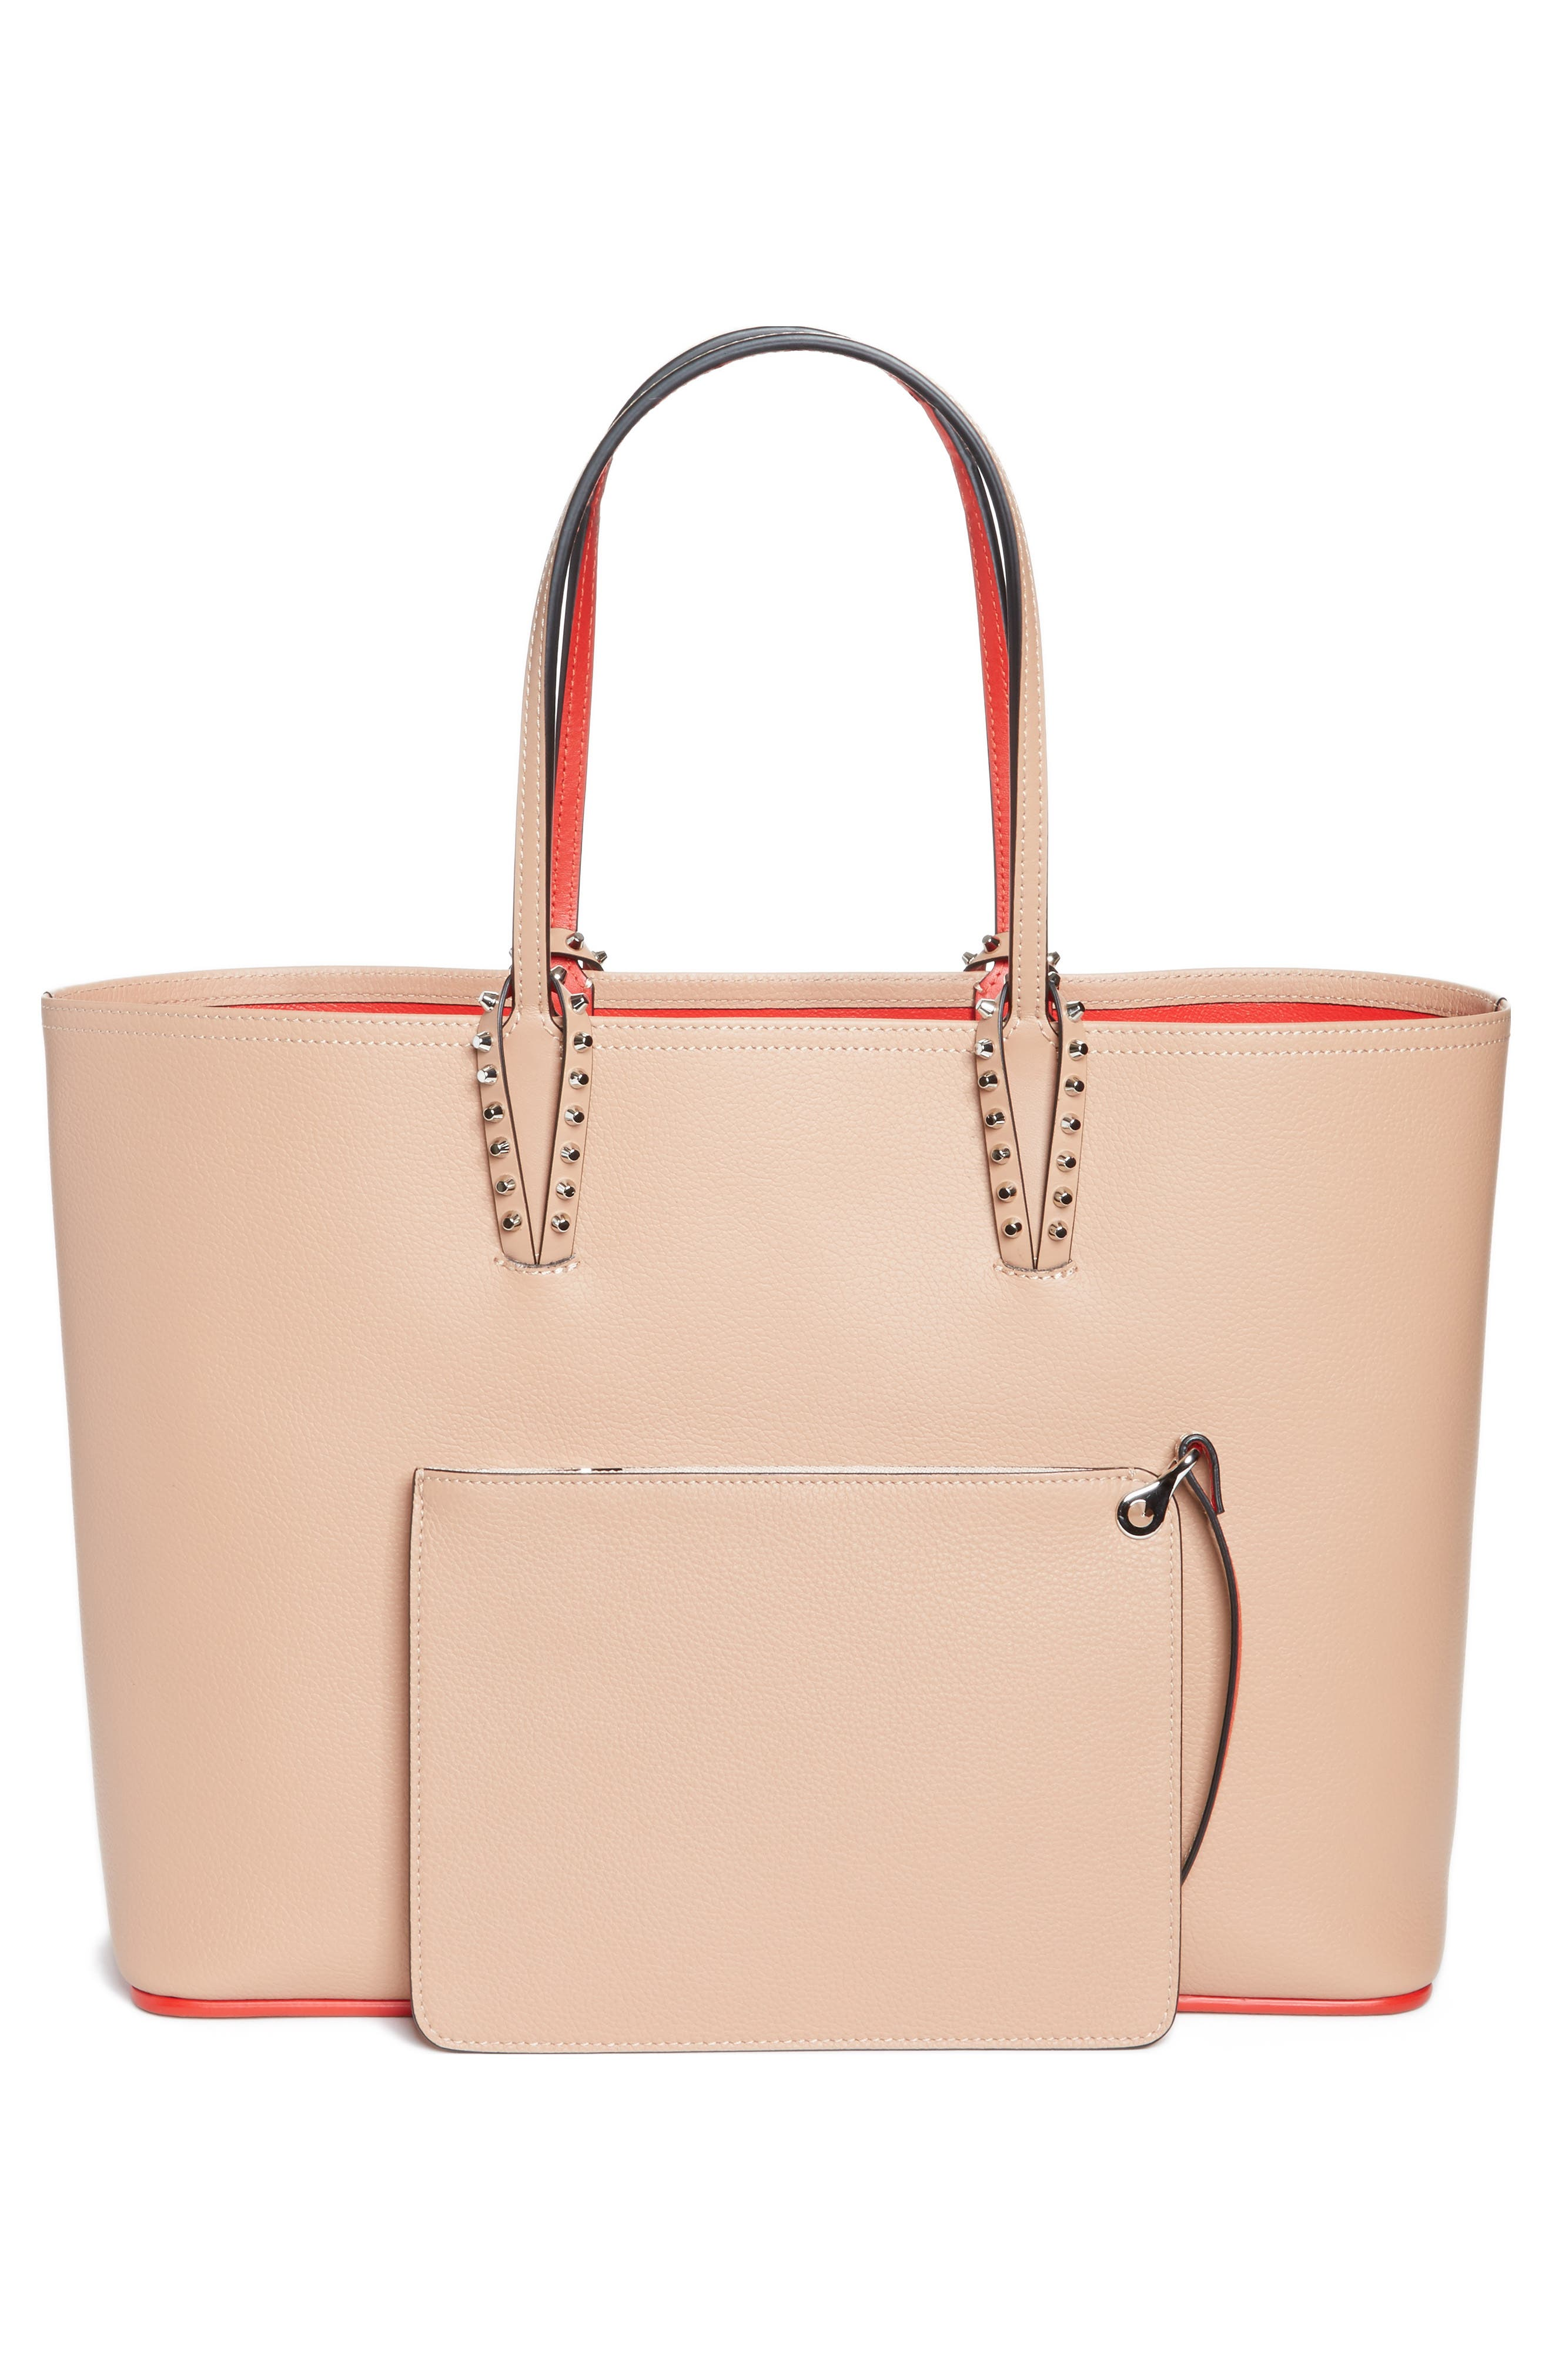 Cabata Calfskin Leather Tote,                             Alternate thumbnail 3, color,                             NUDE/NUDE